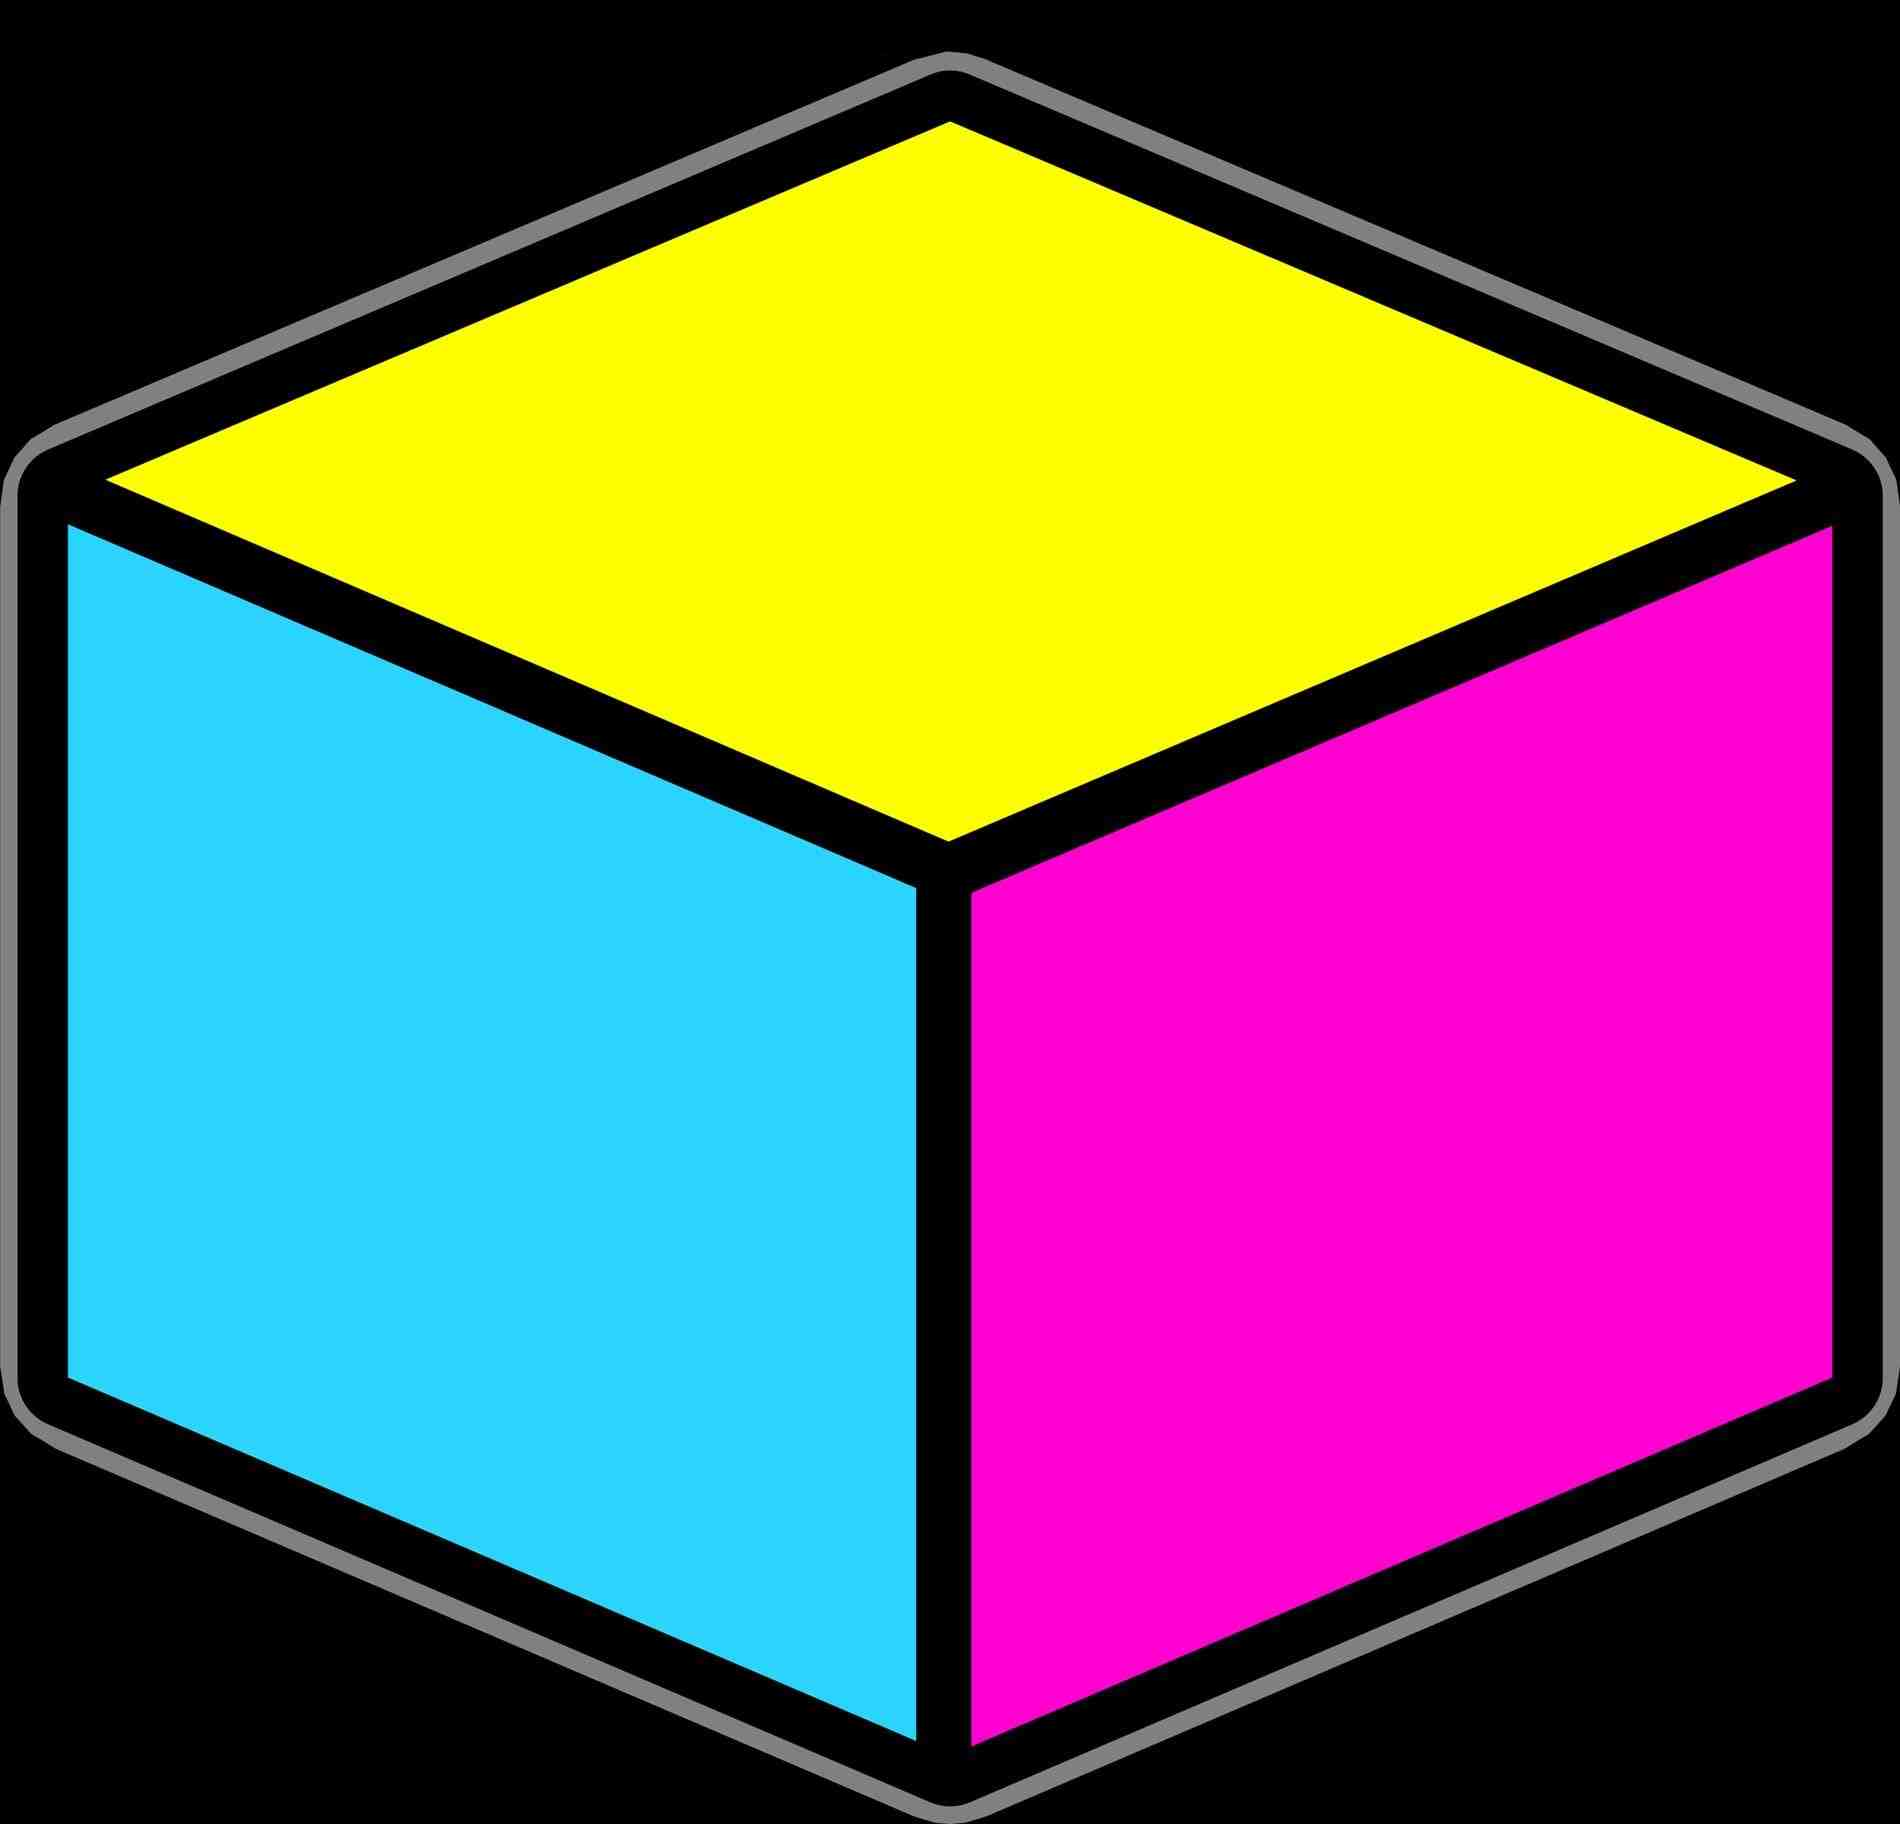 1900x1824 The Images Collection Of Clipartbarnrhclipartbarncom Small Boxes